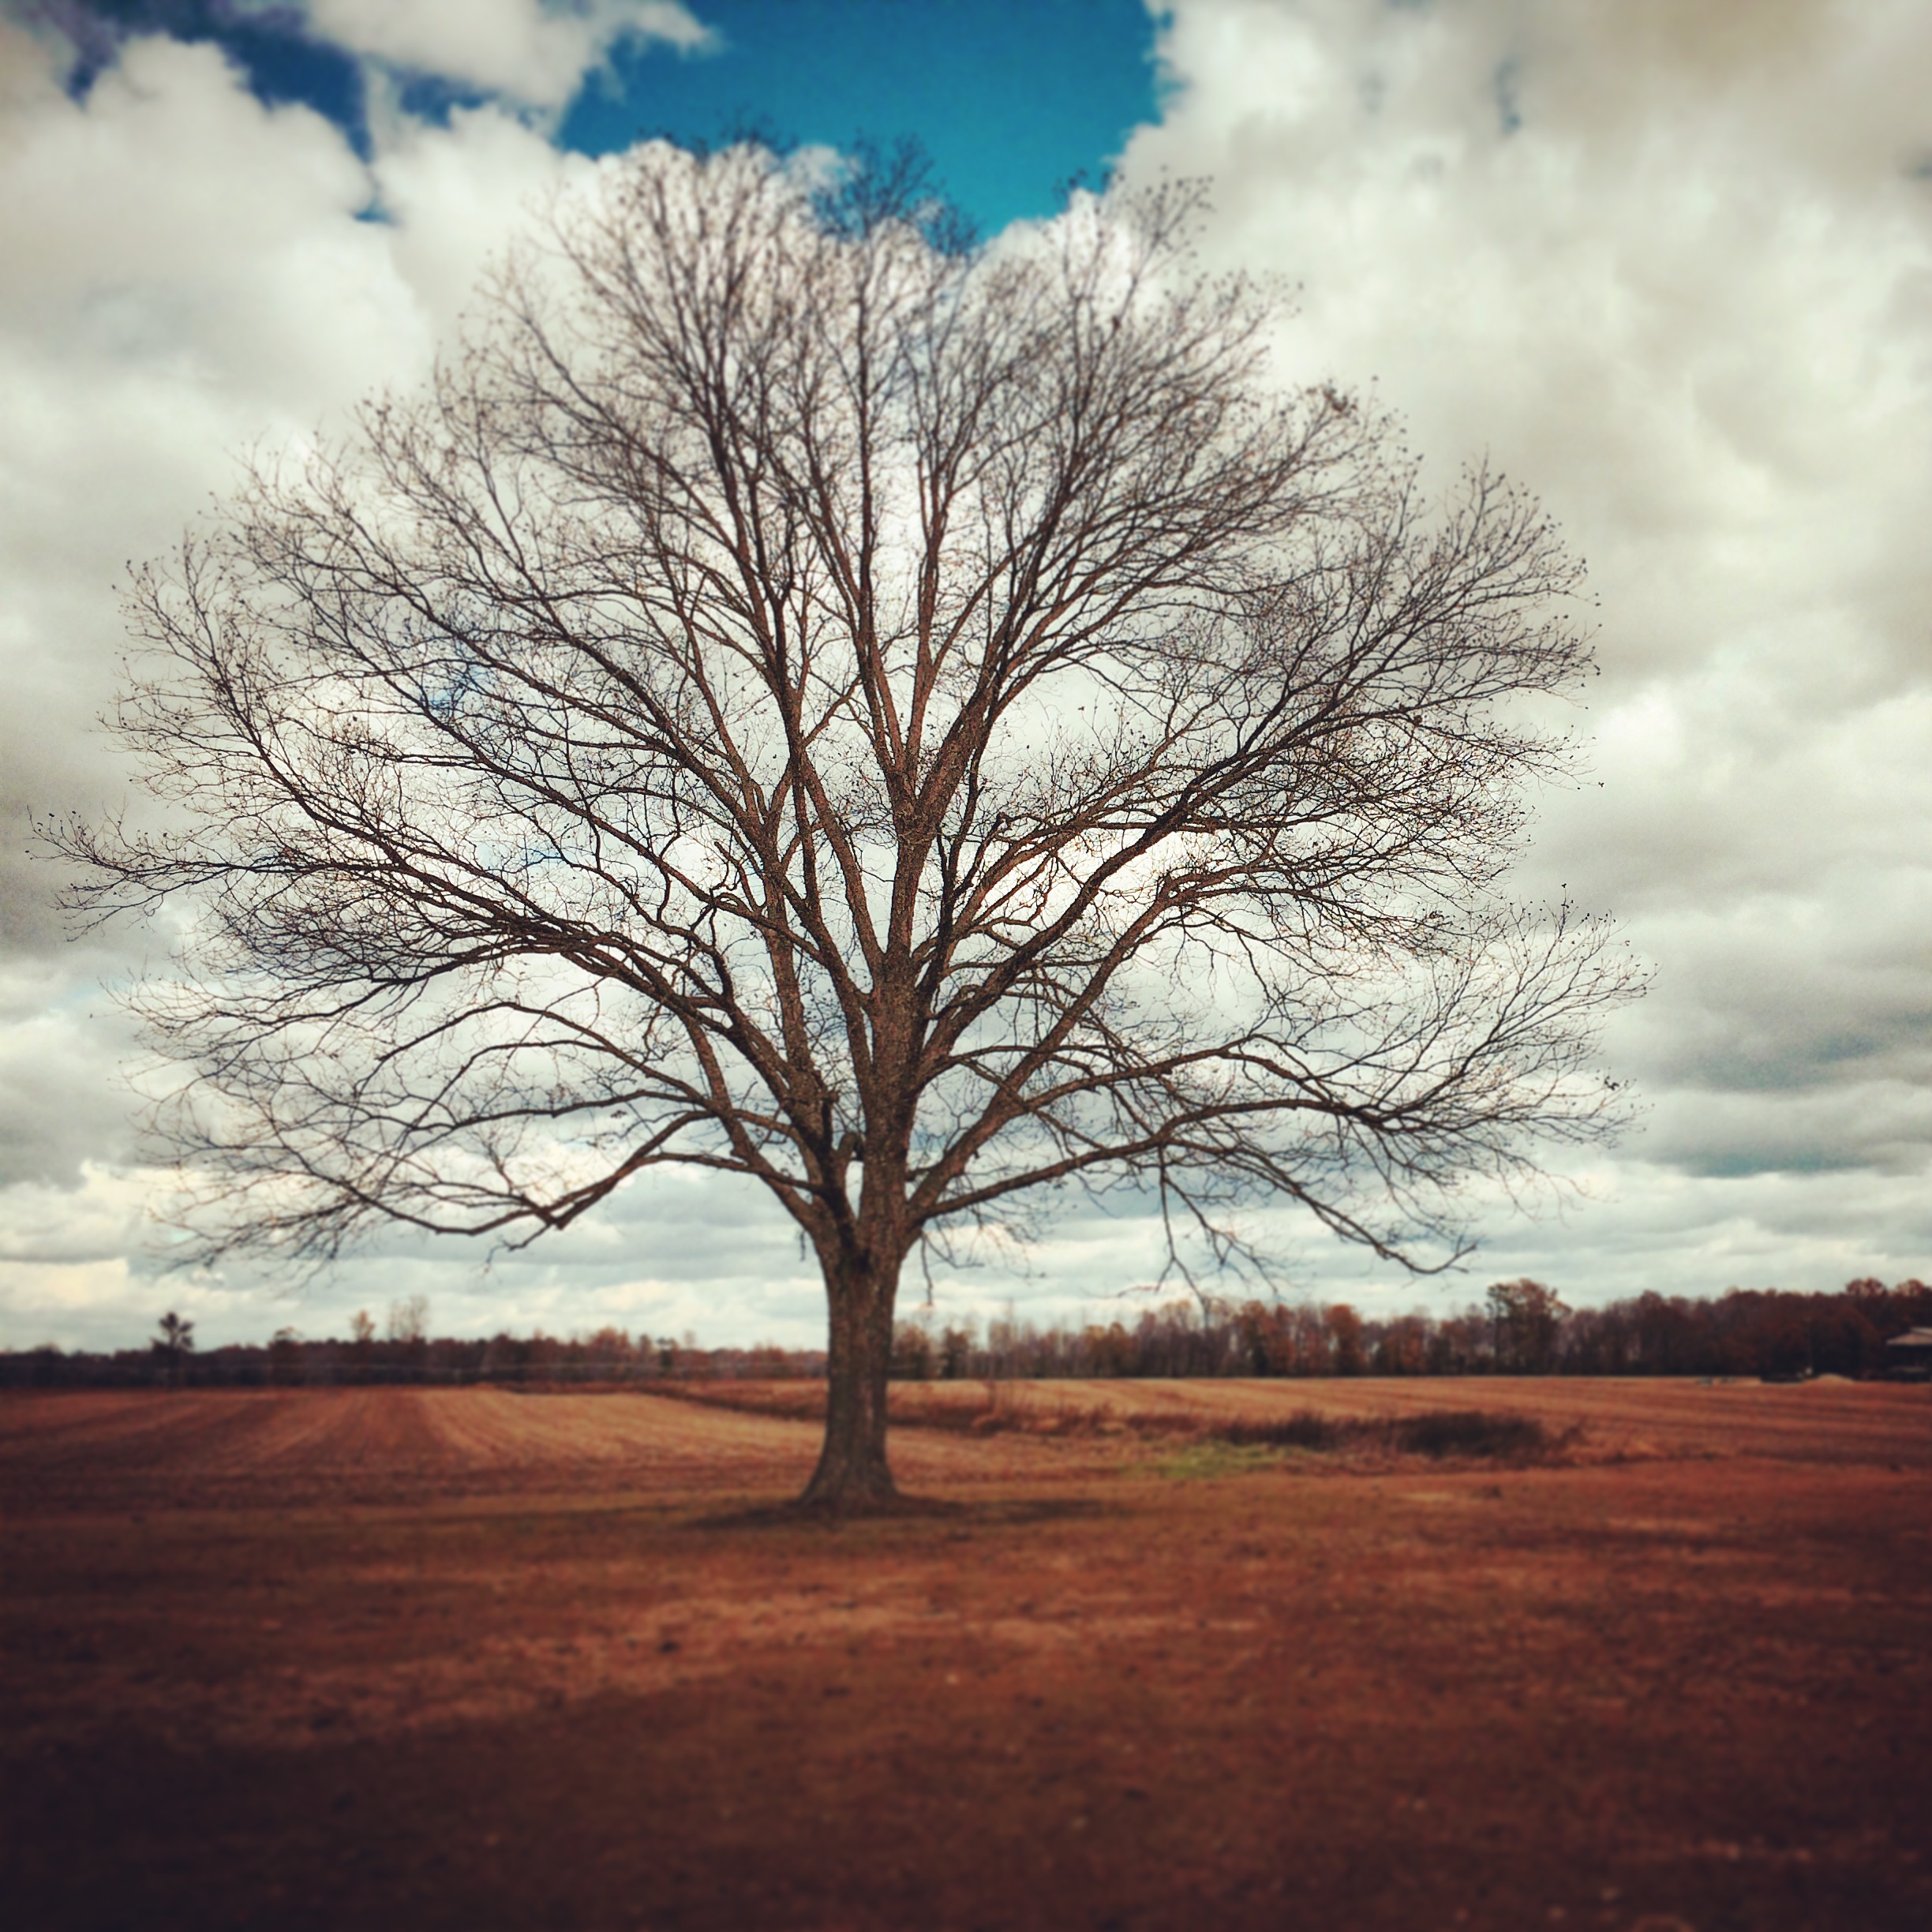 Stand alone tree